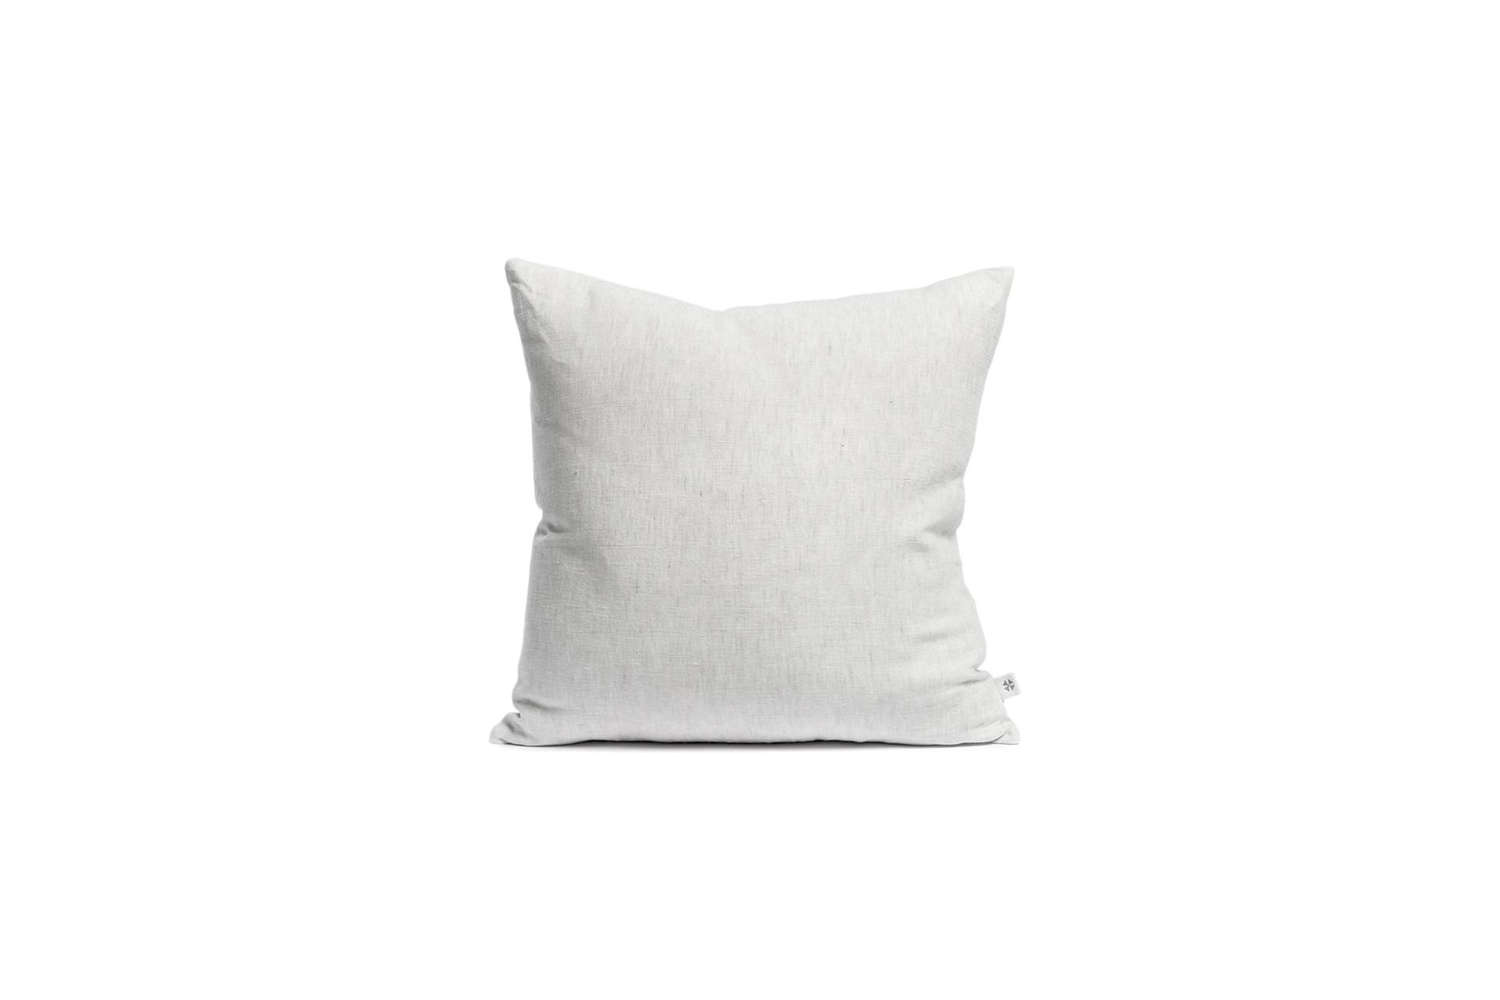 the lightest of the throw pillows is the by mölle misty grey linen cushion; � 23